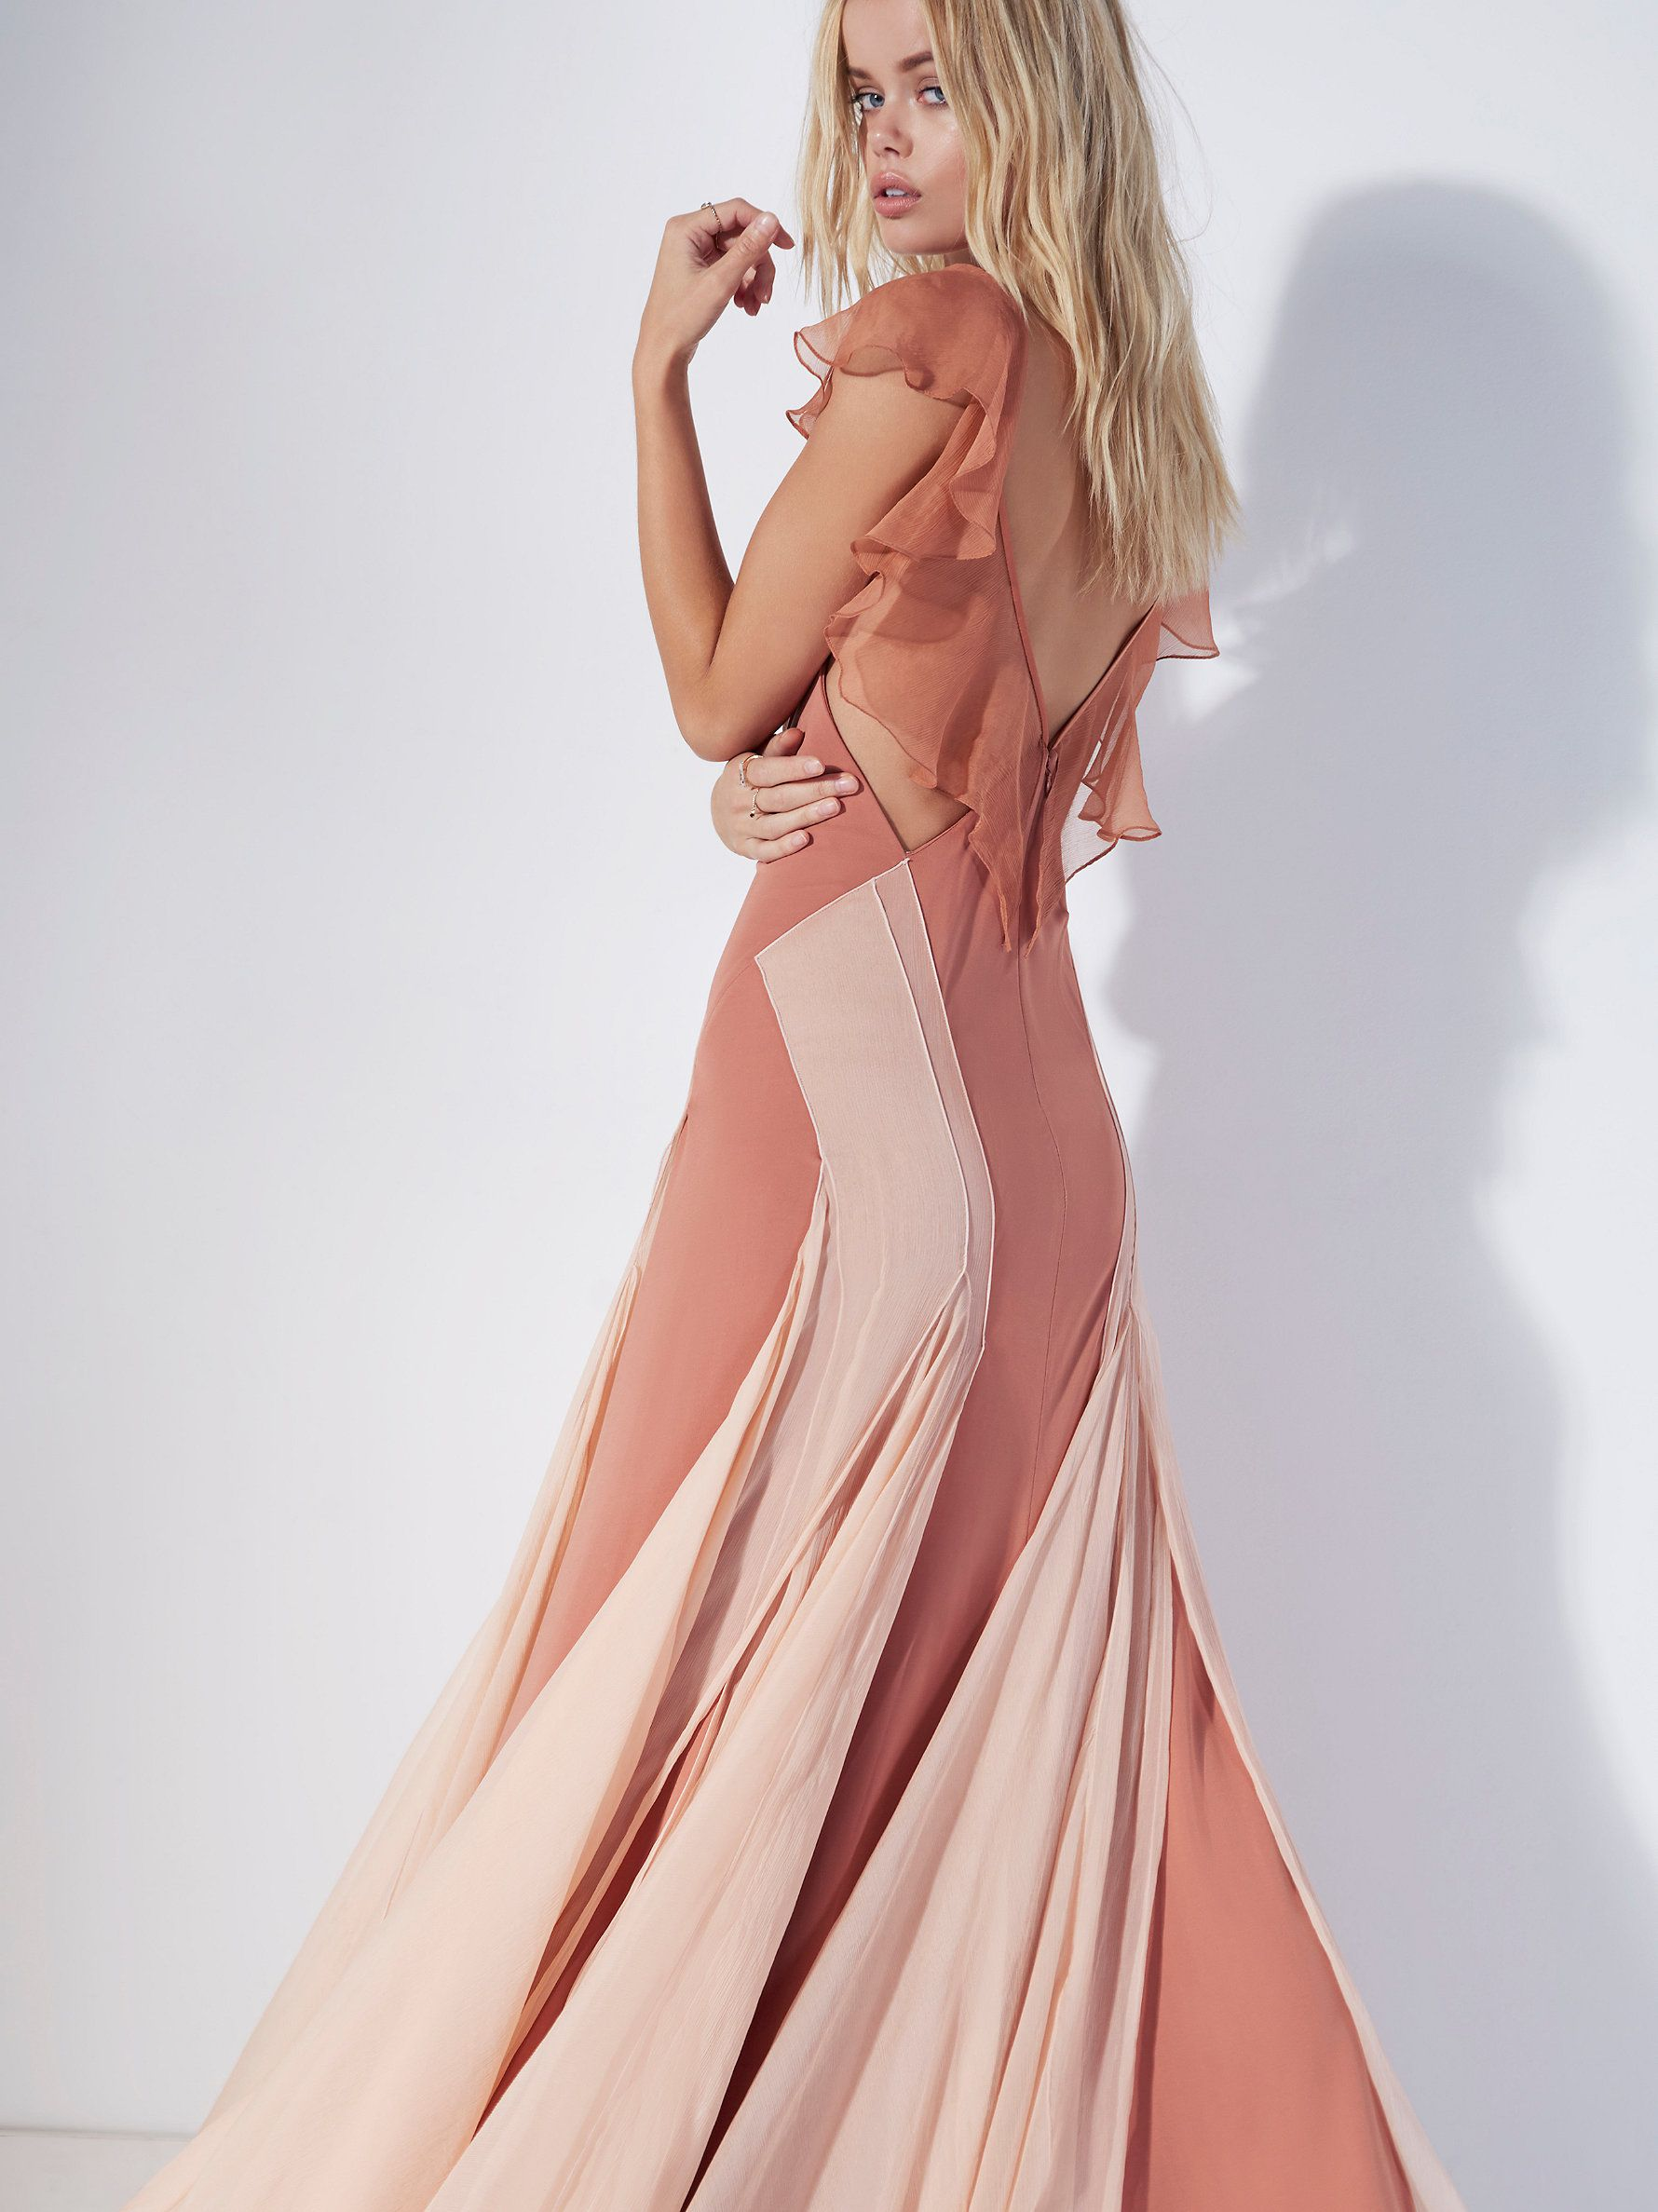 Jill C\'s Limited Edition Maxi Dress | Ethereal maxi gown featuring ...